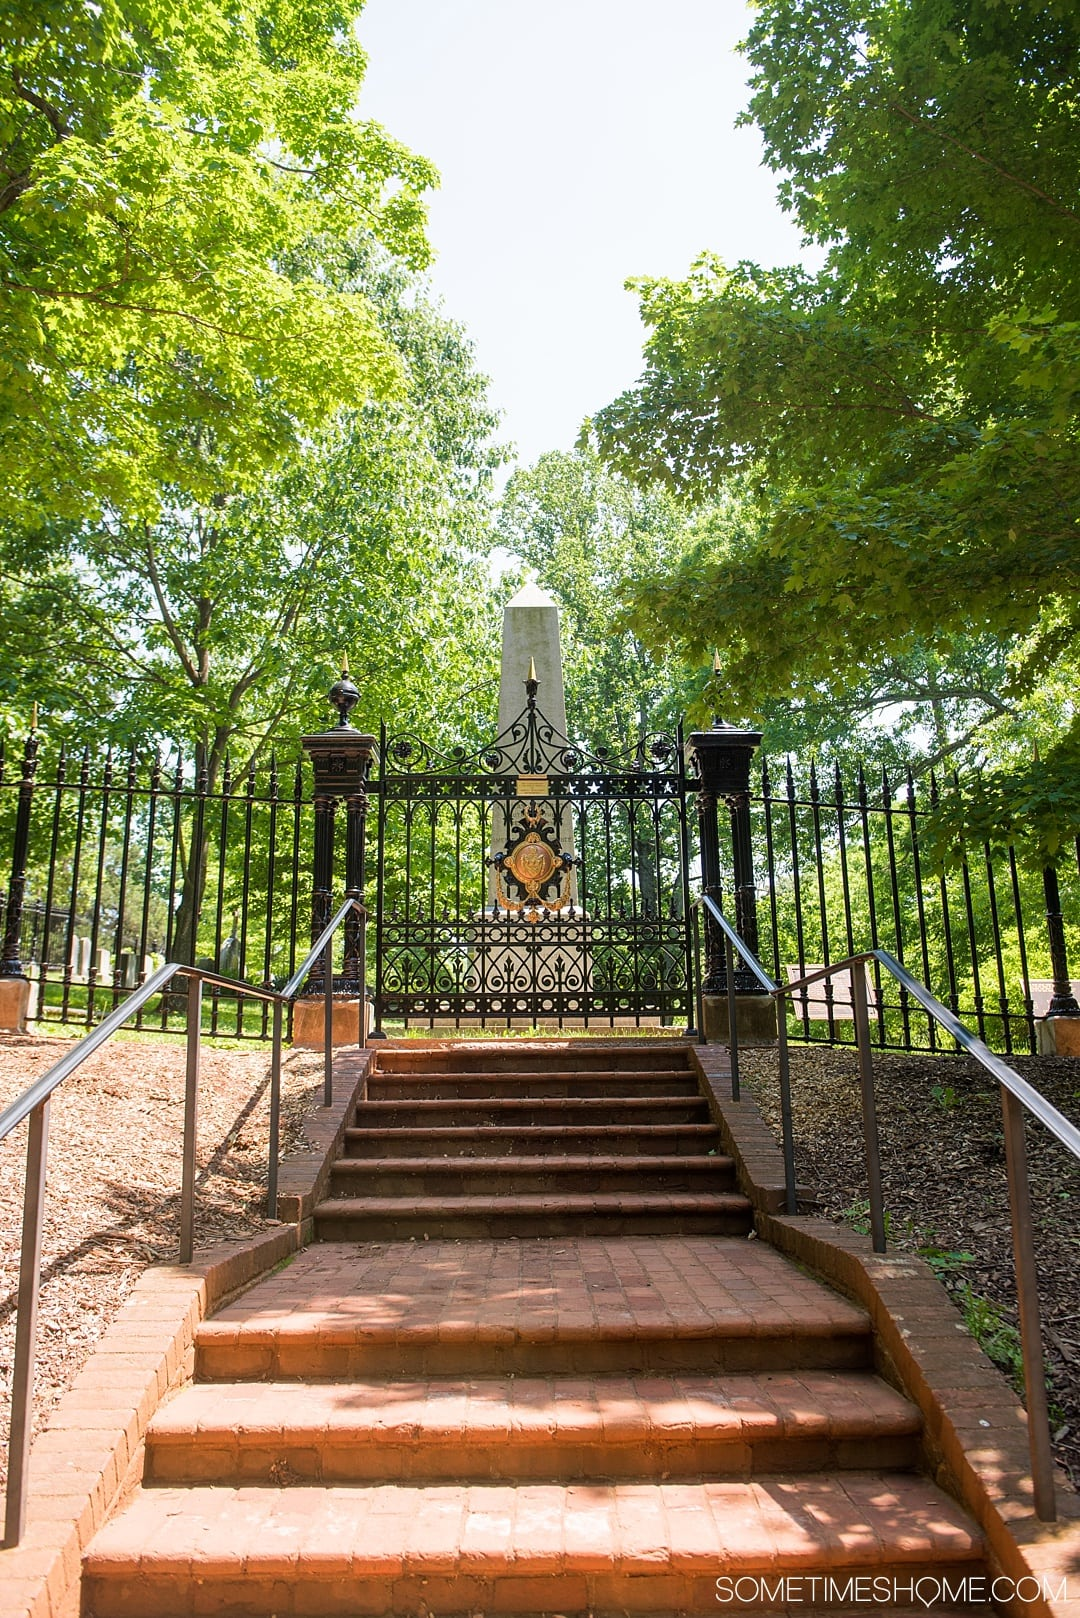 Looking for ideas for things to do in Charlottesville, Virginia? From Thomas Jefferson's Monticello, to Michie Tavern house and restaurant with an additional stop at James Monroe's home we have a complete review of the Neighborhood Pass for this beautiful destination near the Blue Ridge Mountains. Did you know you can see the presidents grave at Monticello too? Click through for more photographs and information! #CharlottesvilleVA #CharlottesvilleVirginia #RatherbeinCville #ThomasJefferson #Monticello #eastcoast #roadtrips